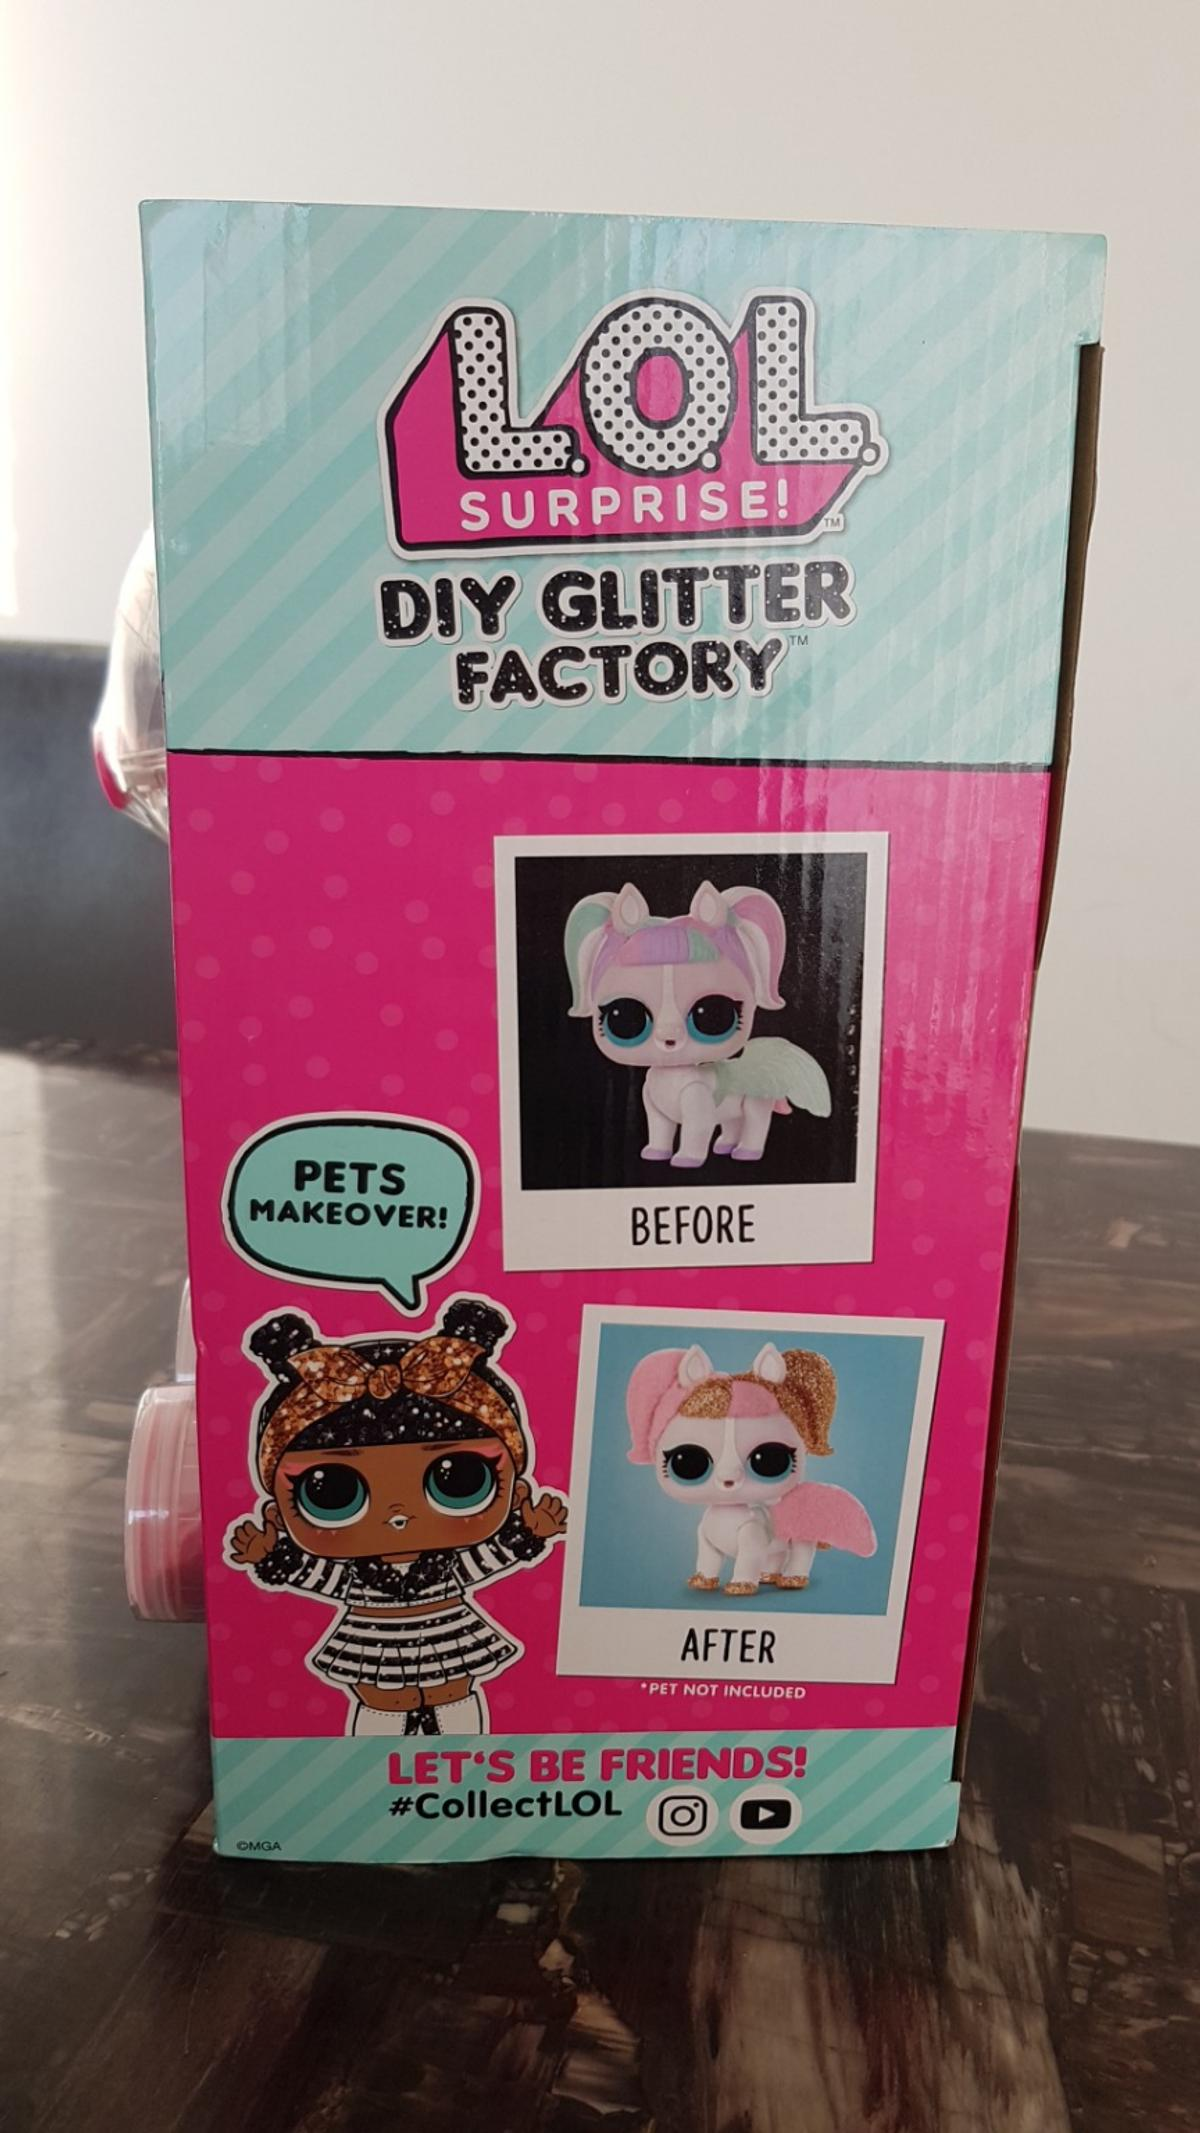 Lol Surprise Diy Glitter Factory In Nw9 Londonas For 3000 For Sale